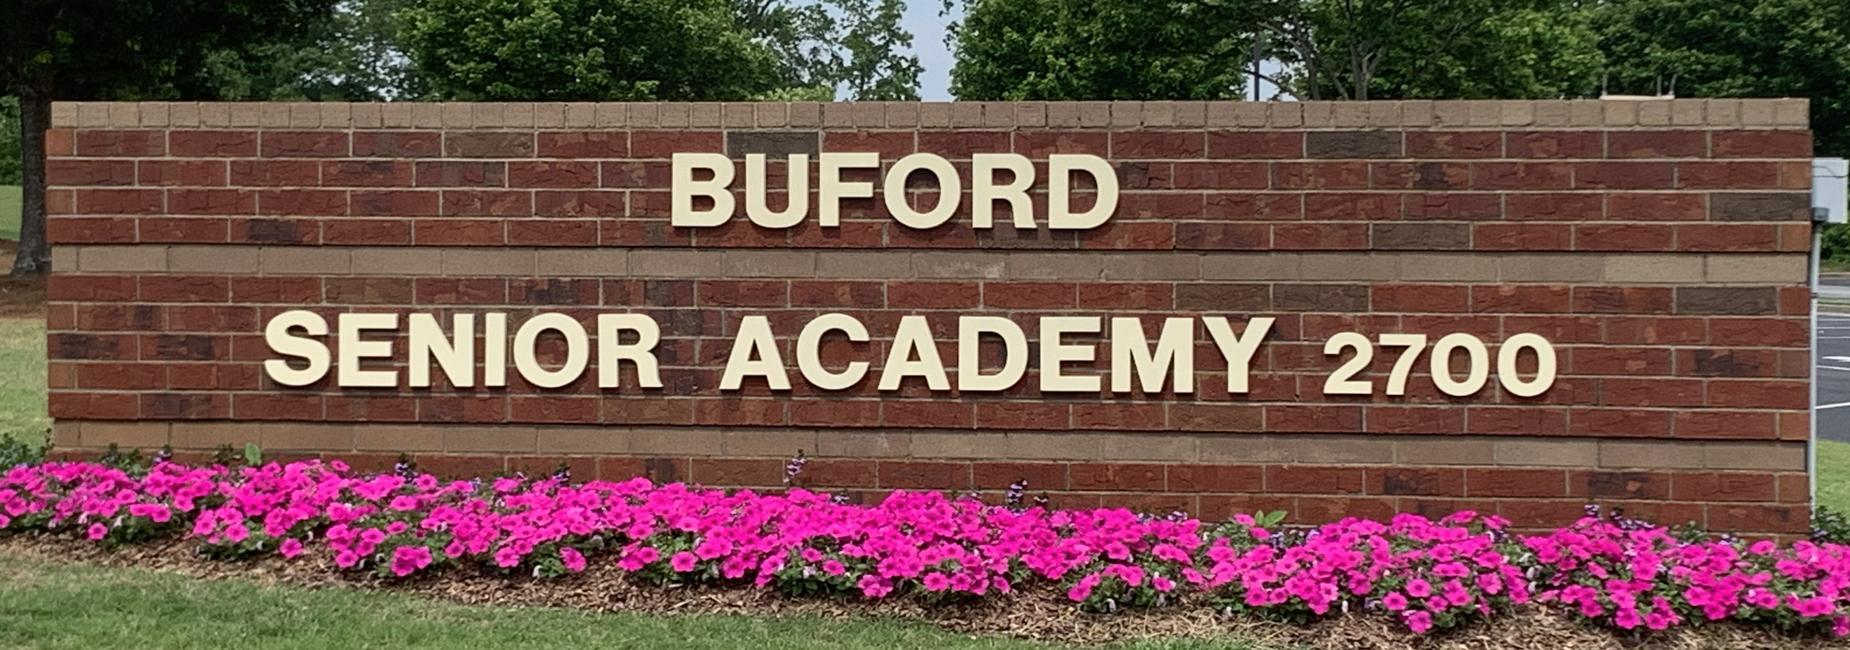 Buford Senior Academy